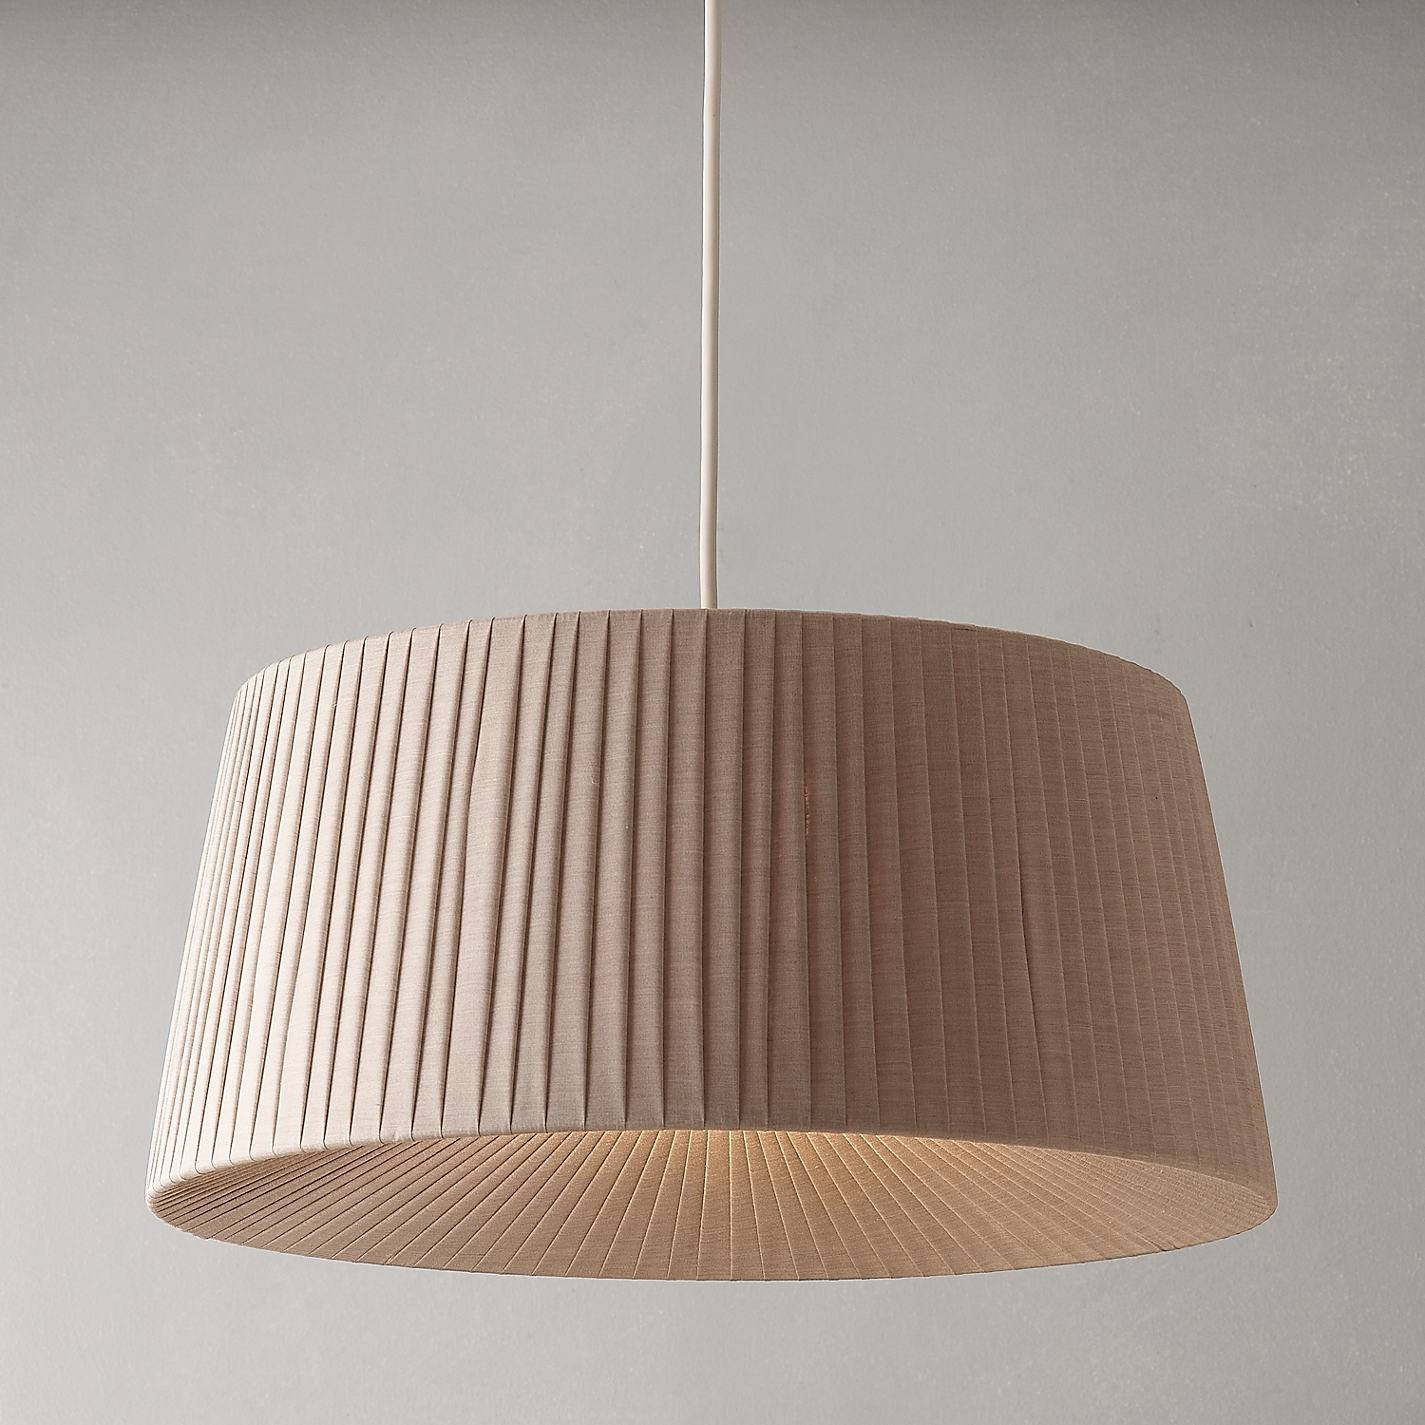 Ceiling Light Shades - Baby-Exit for John Lewis Pendant Light Shades (Image 4 of 15)